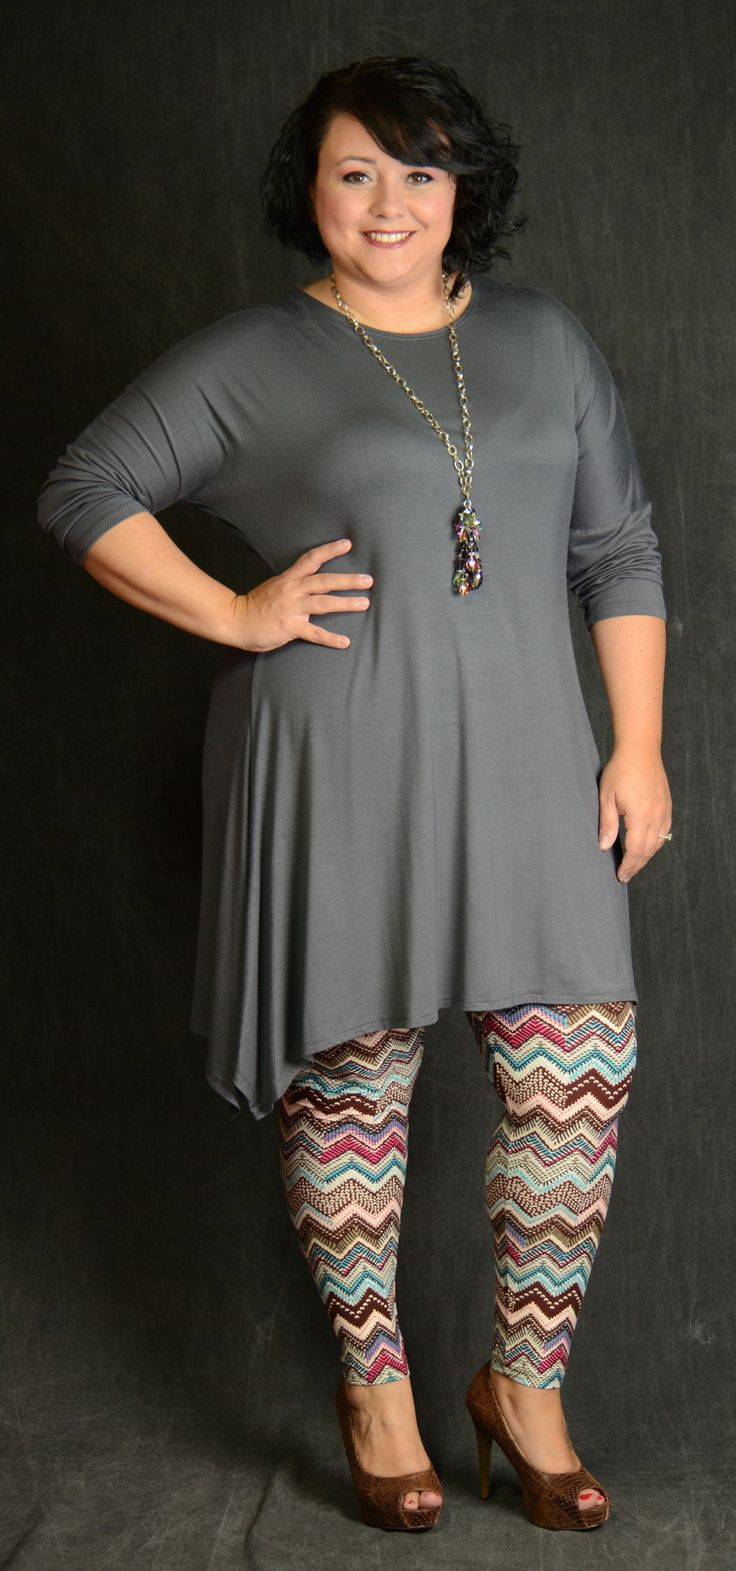 Plus Size Womens Outfits With Leggings - Sweater Tunic